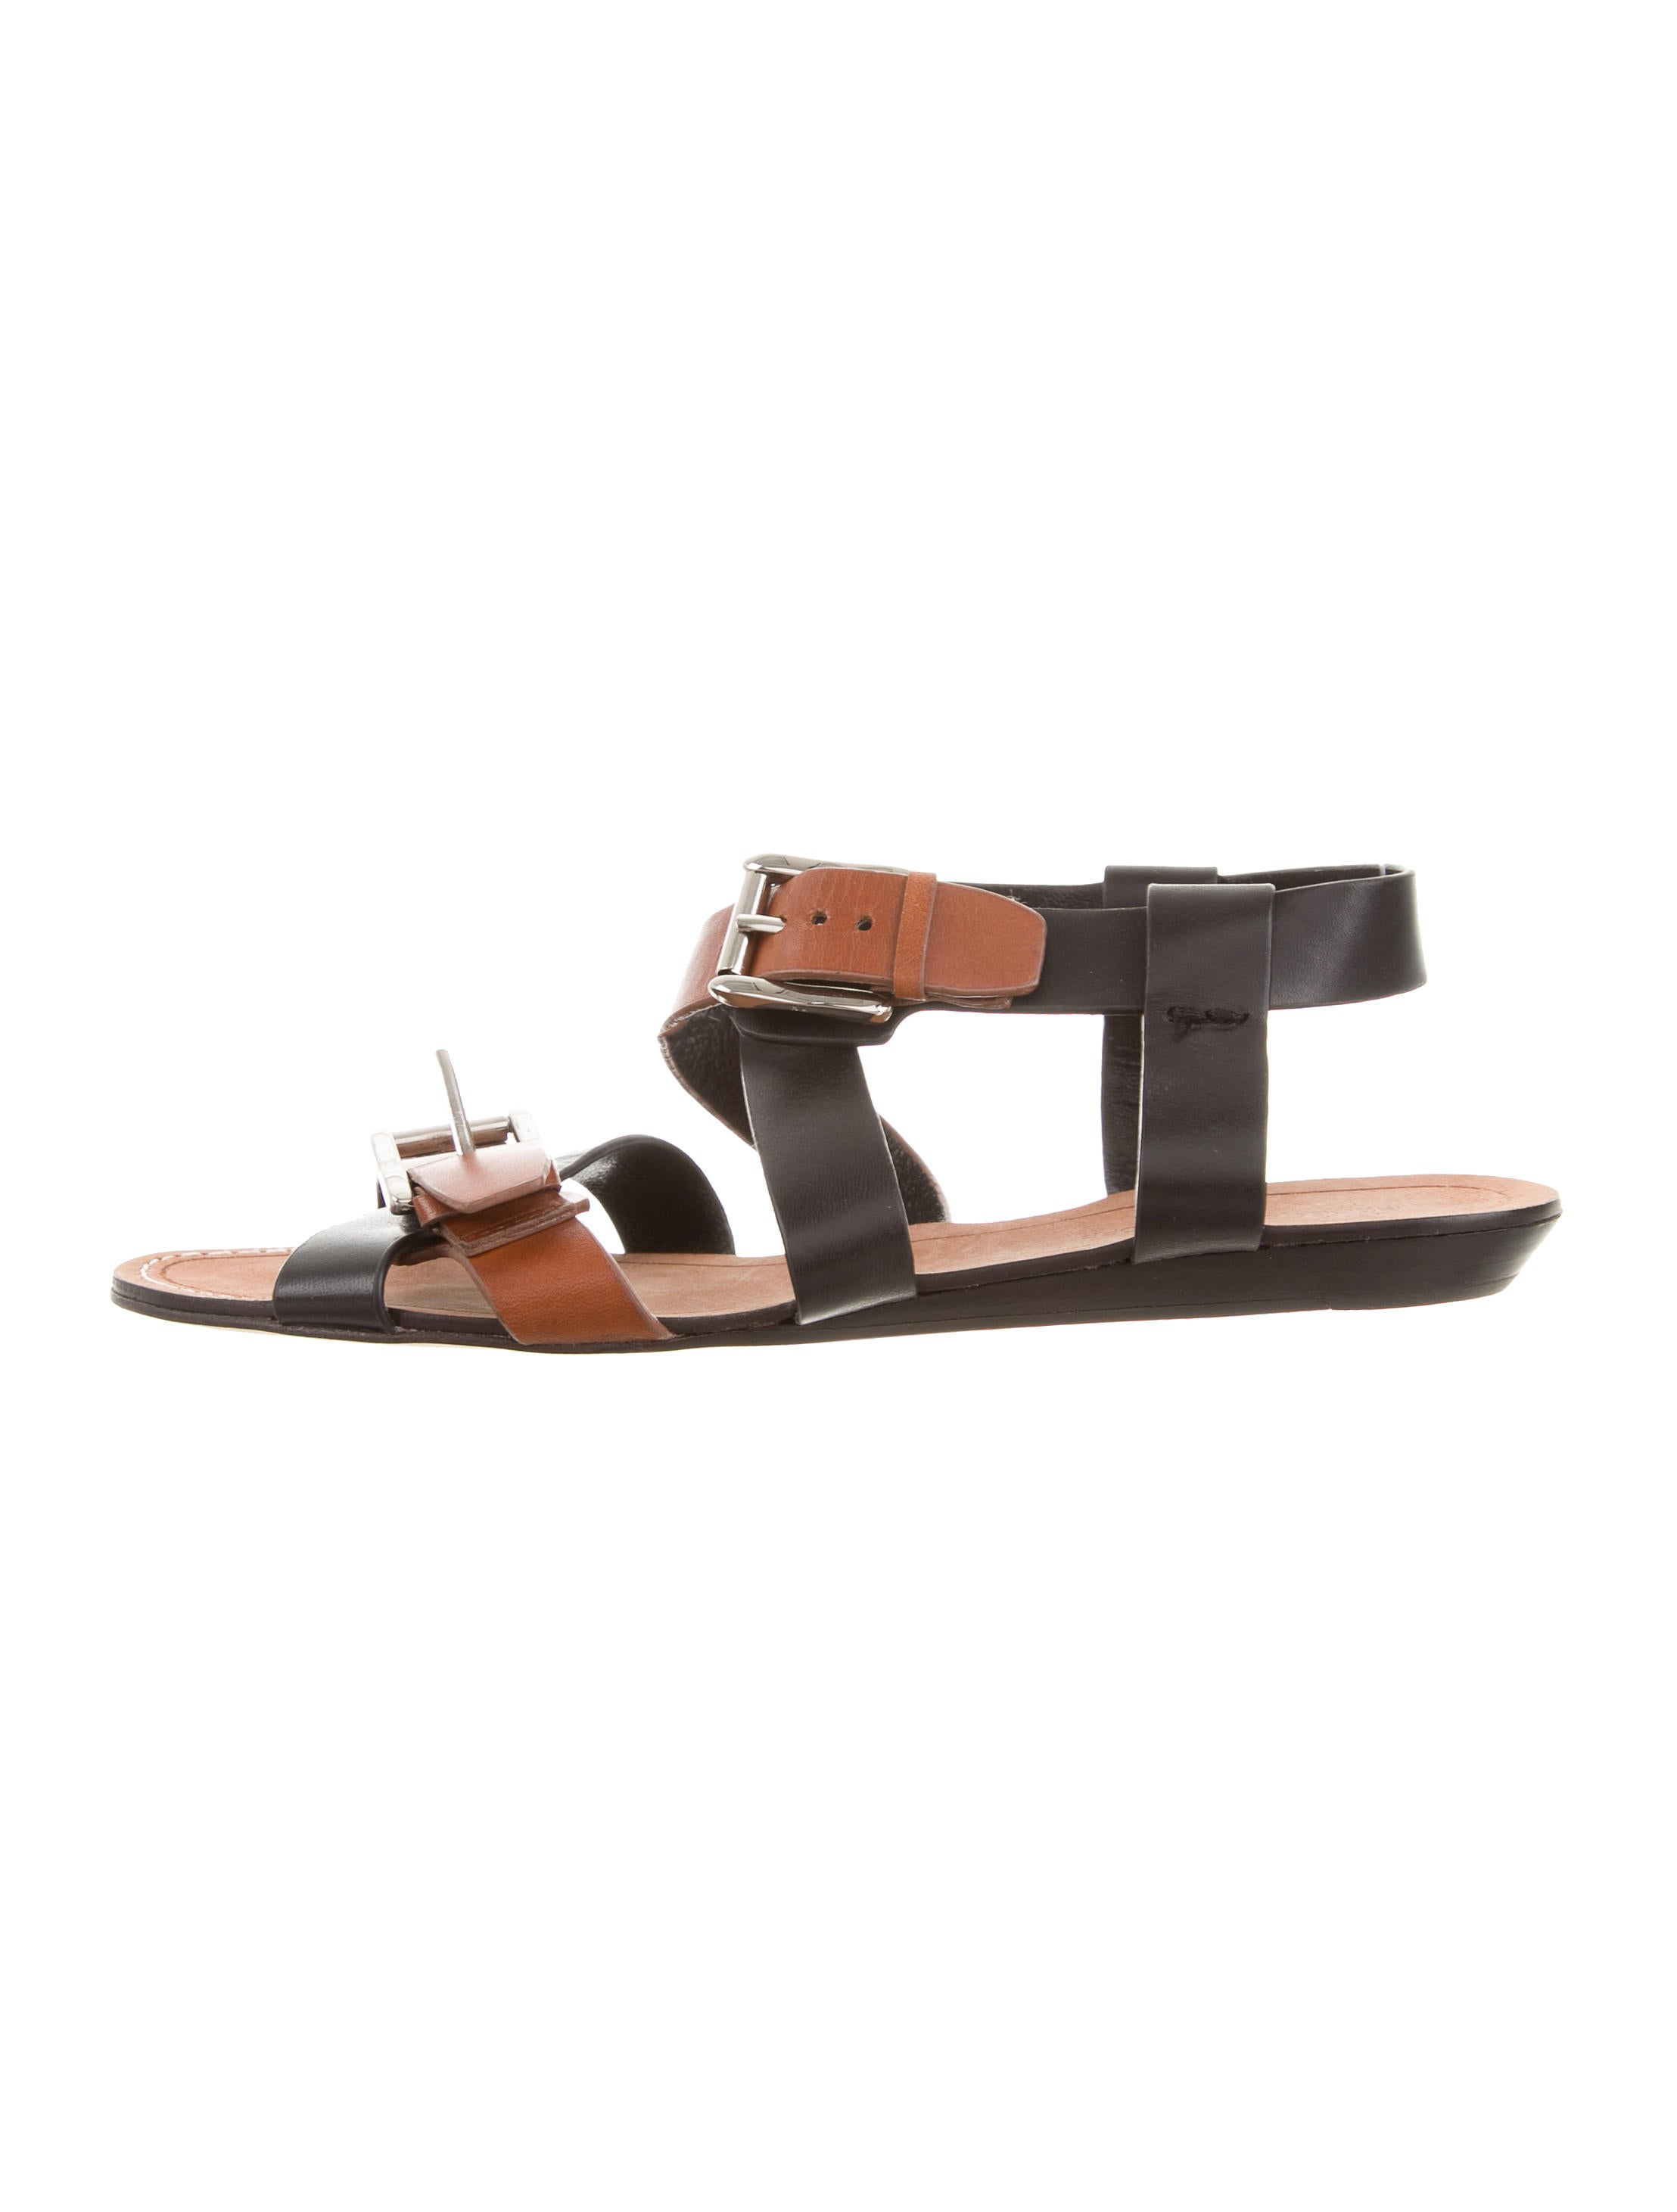 Rebecca Minkoff Josfine Crossover Sandals outlet sneakernews clearance fashion Style cheap sale footlocker finishline for sale discount sale clearance view wtNKav0tD